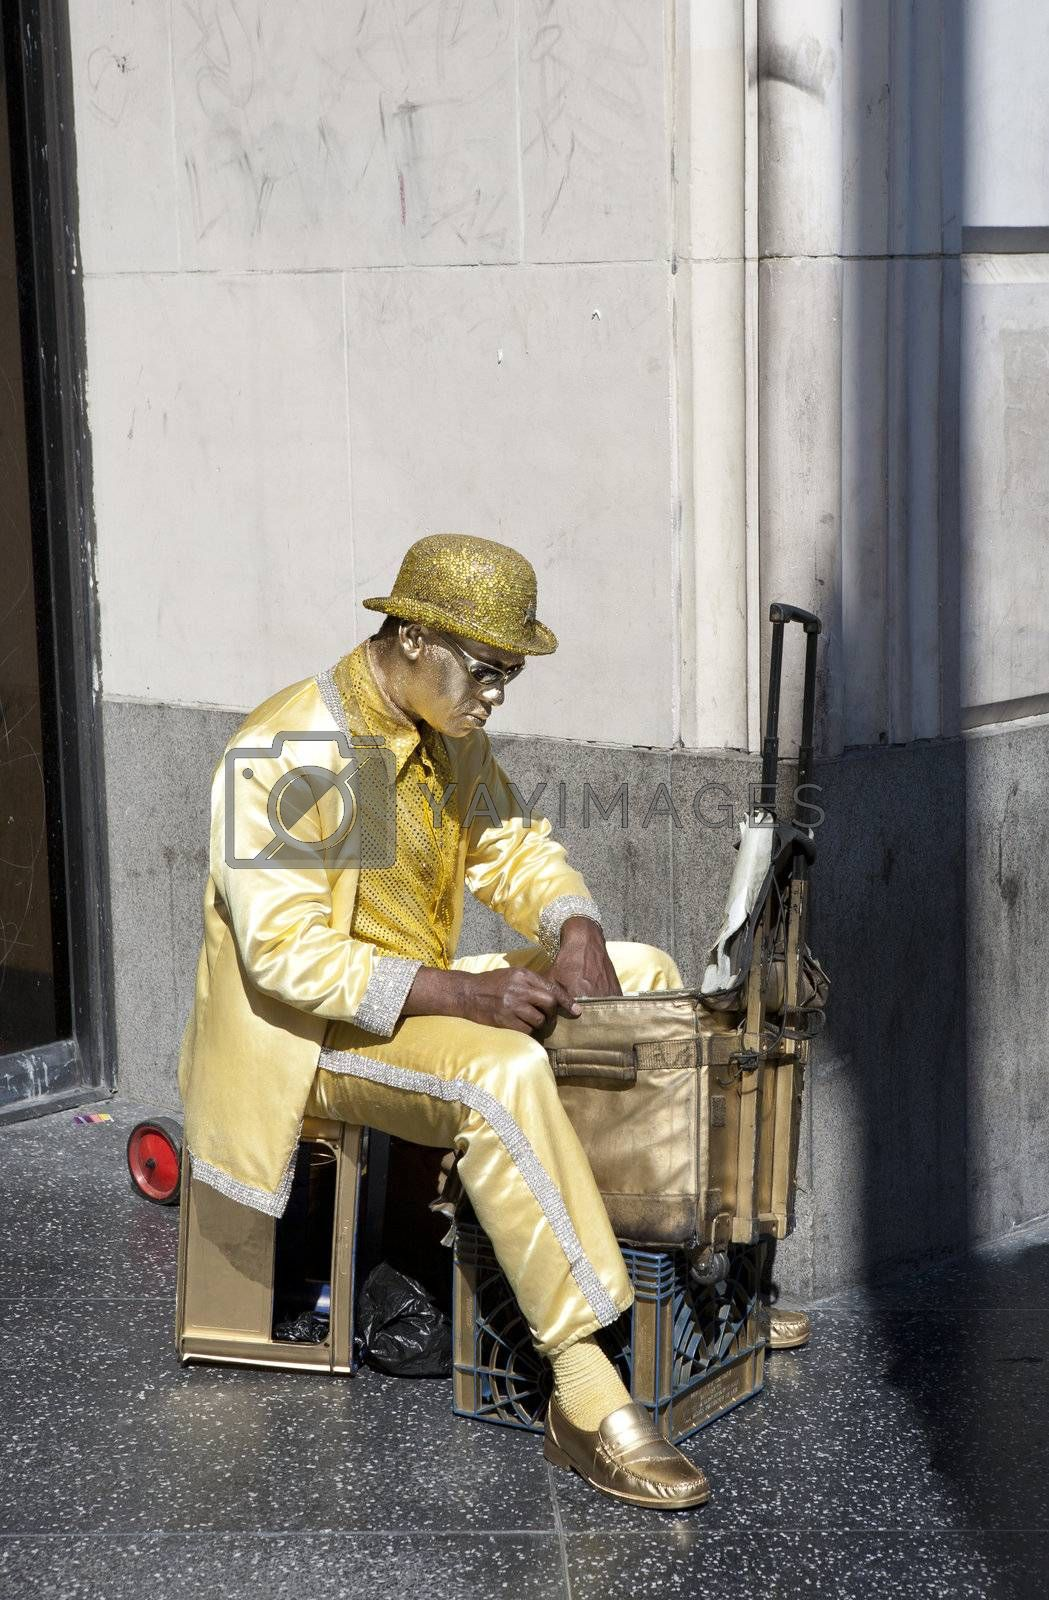 Street performer covered in gold paint getting ready to perform on a sidewalk on Hollywood Blvd.